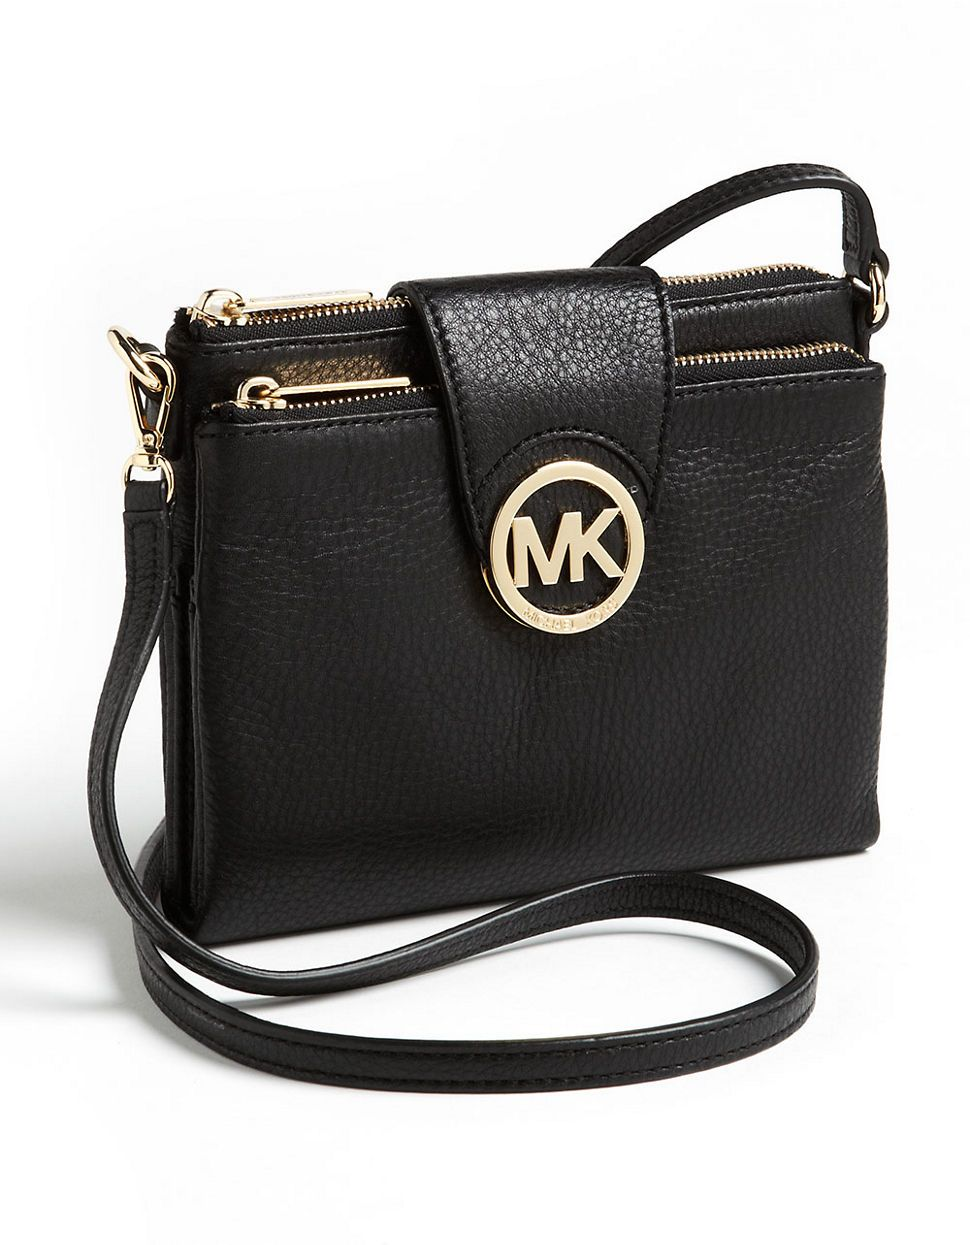 025897702d99 ... Online Store, Larger Discount! Michael Michael Kors Fulton Crossbody Bag  Black